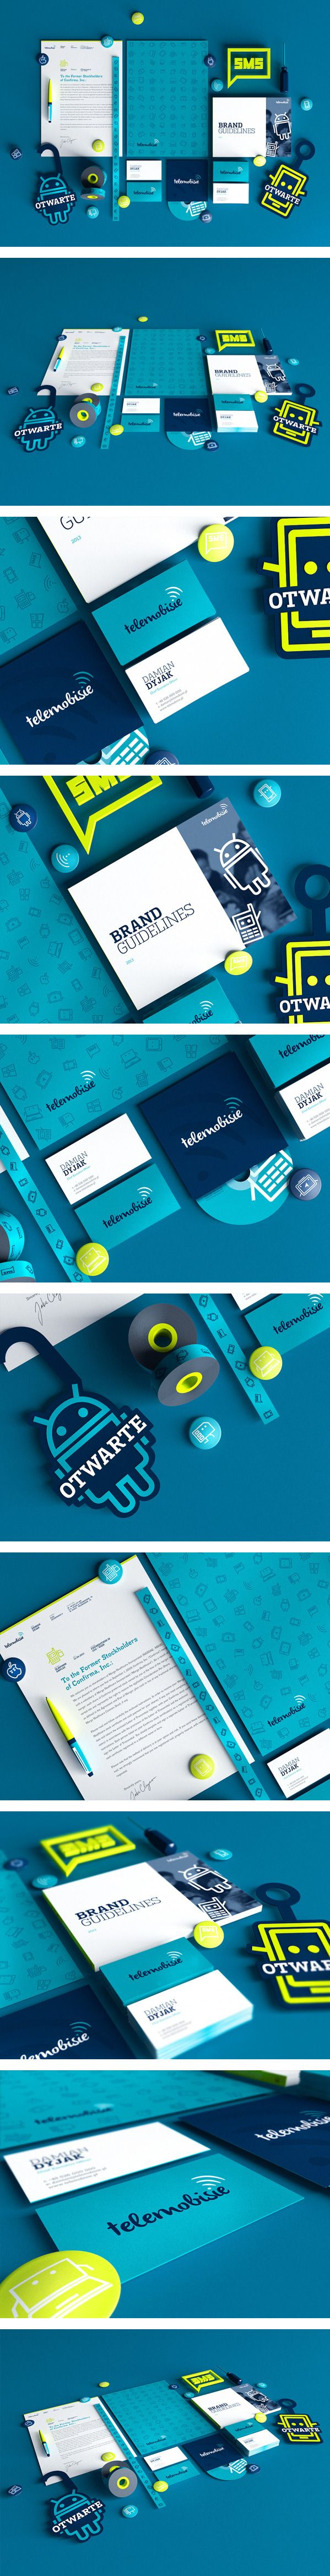 Telemobisie identity. Love the color combo, playful but still professional.